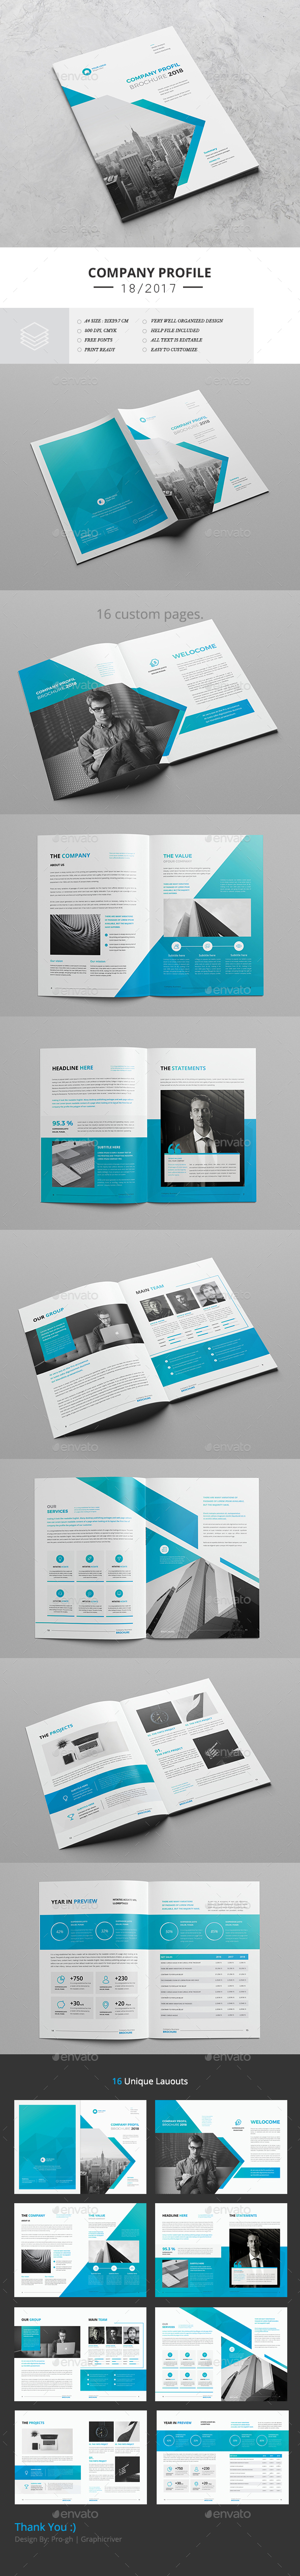 Company Profile 2018 - Corporate Brochures